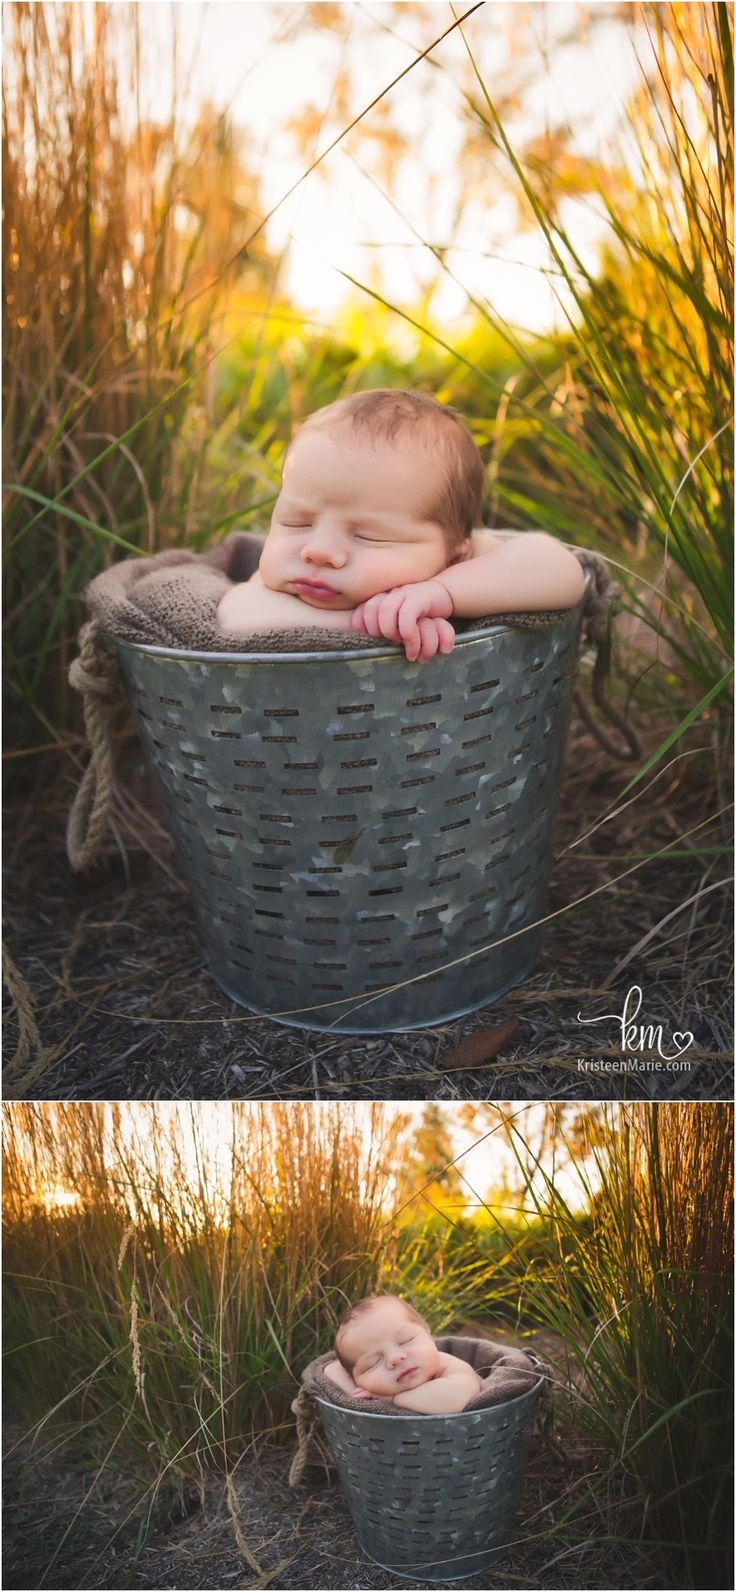 newborn baby in a bucket at sunset - outdoor newborn pictures - outdoor newborn photography